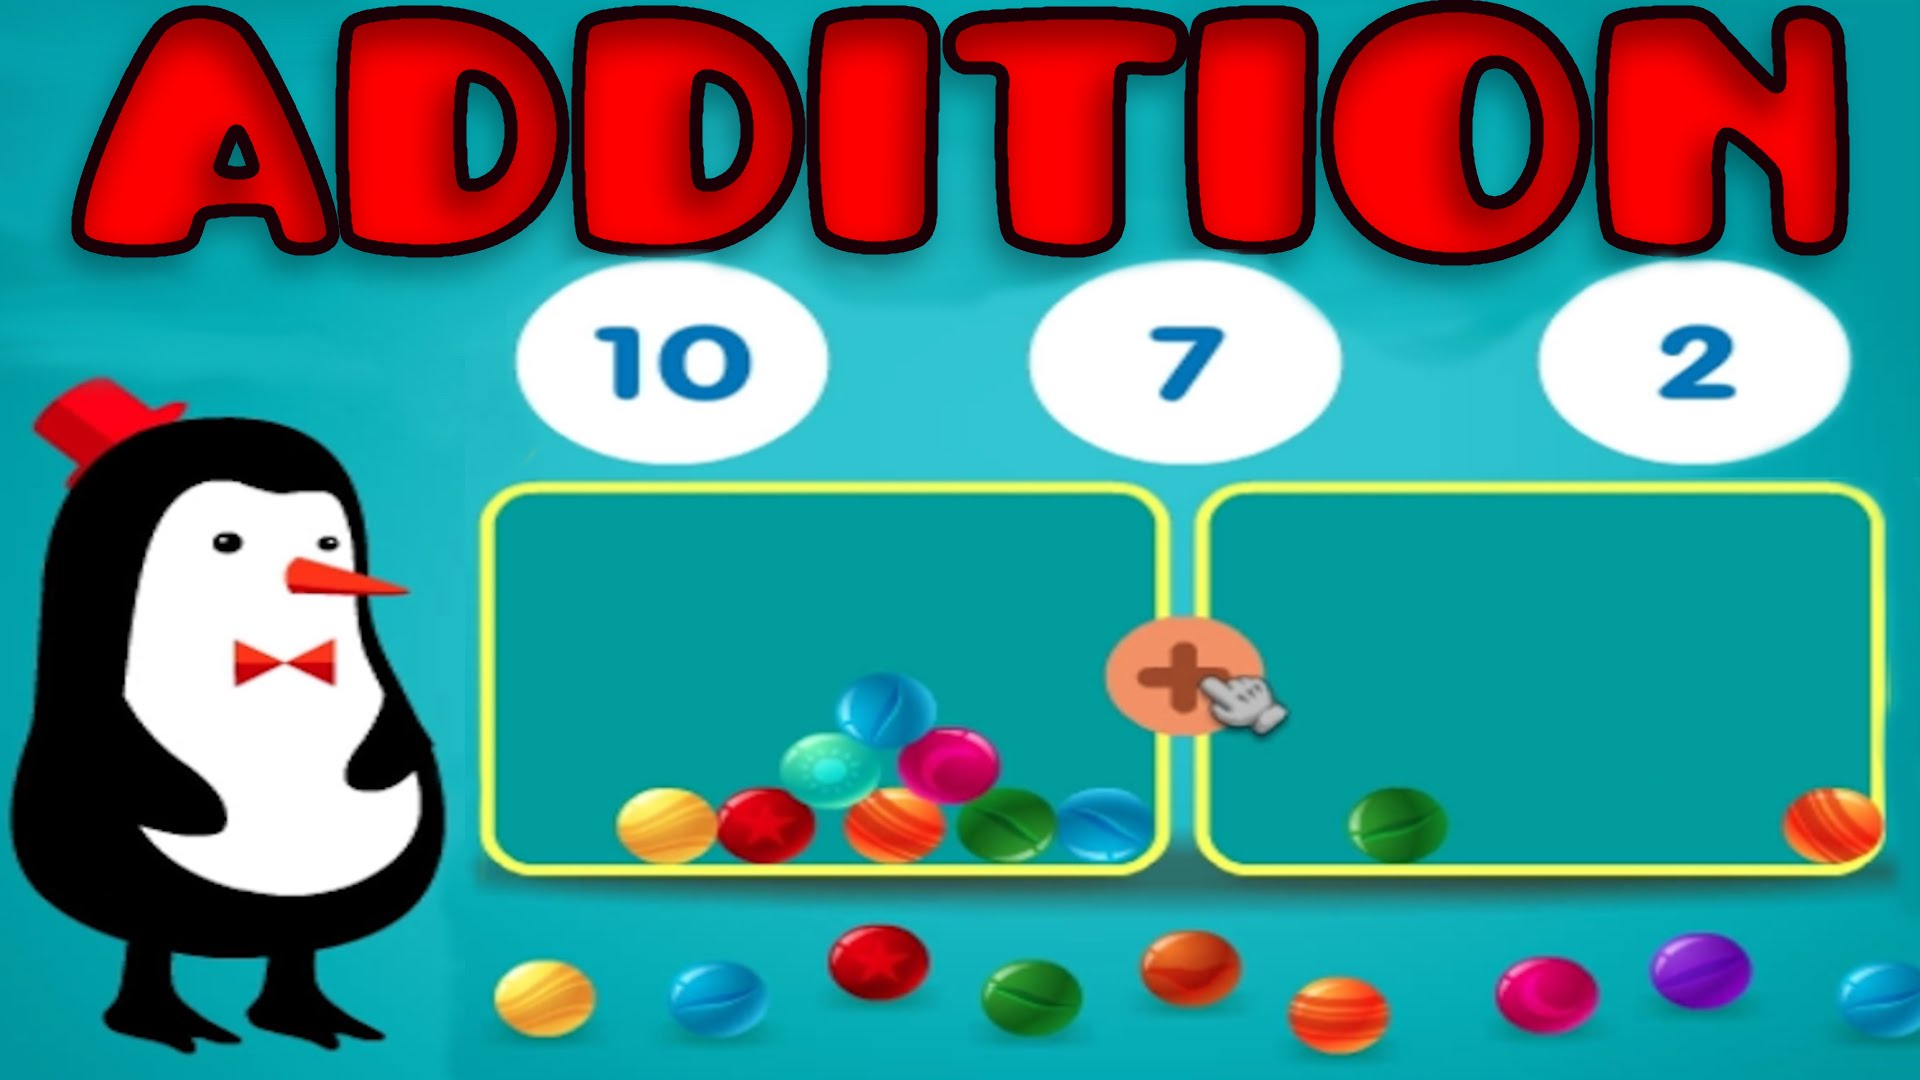 Addition clipart preschool math. With manipulatives basic counting